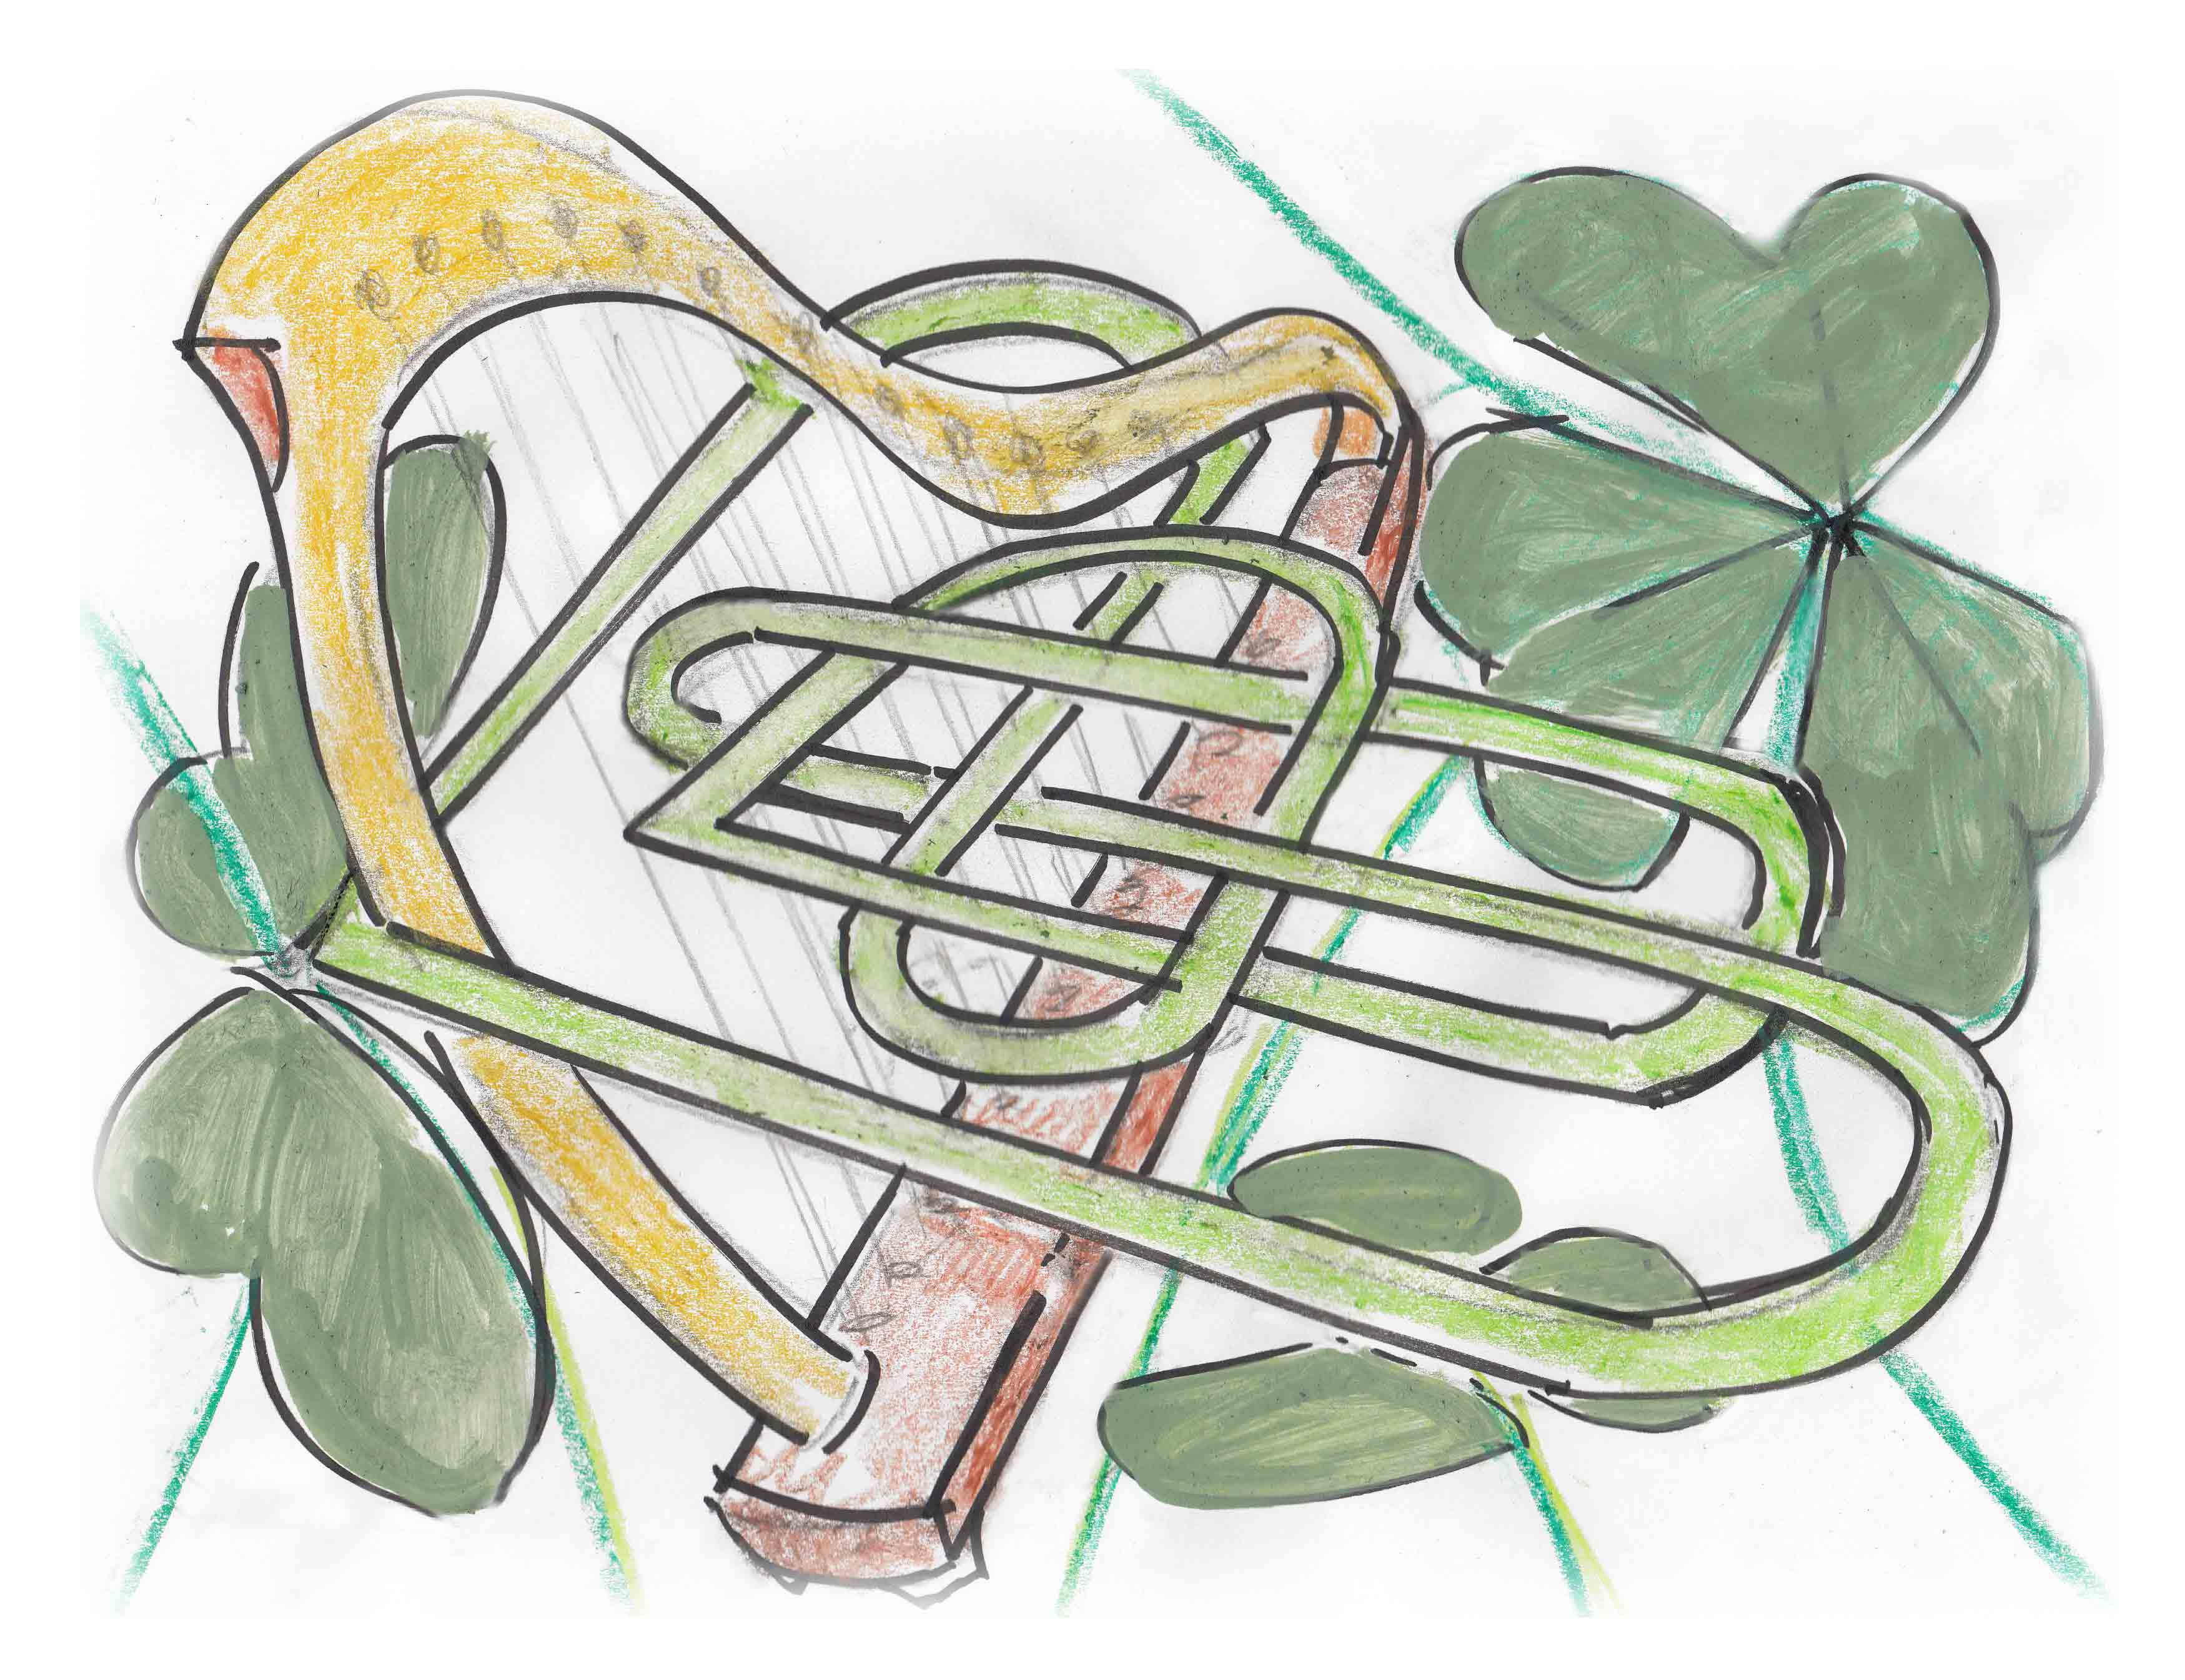 Harp and Shamrock Sketch by Marian Androne